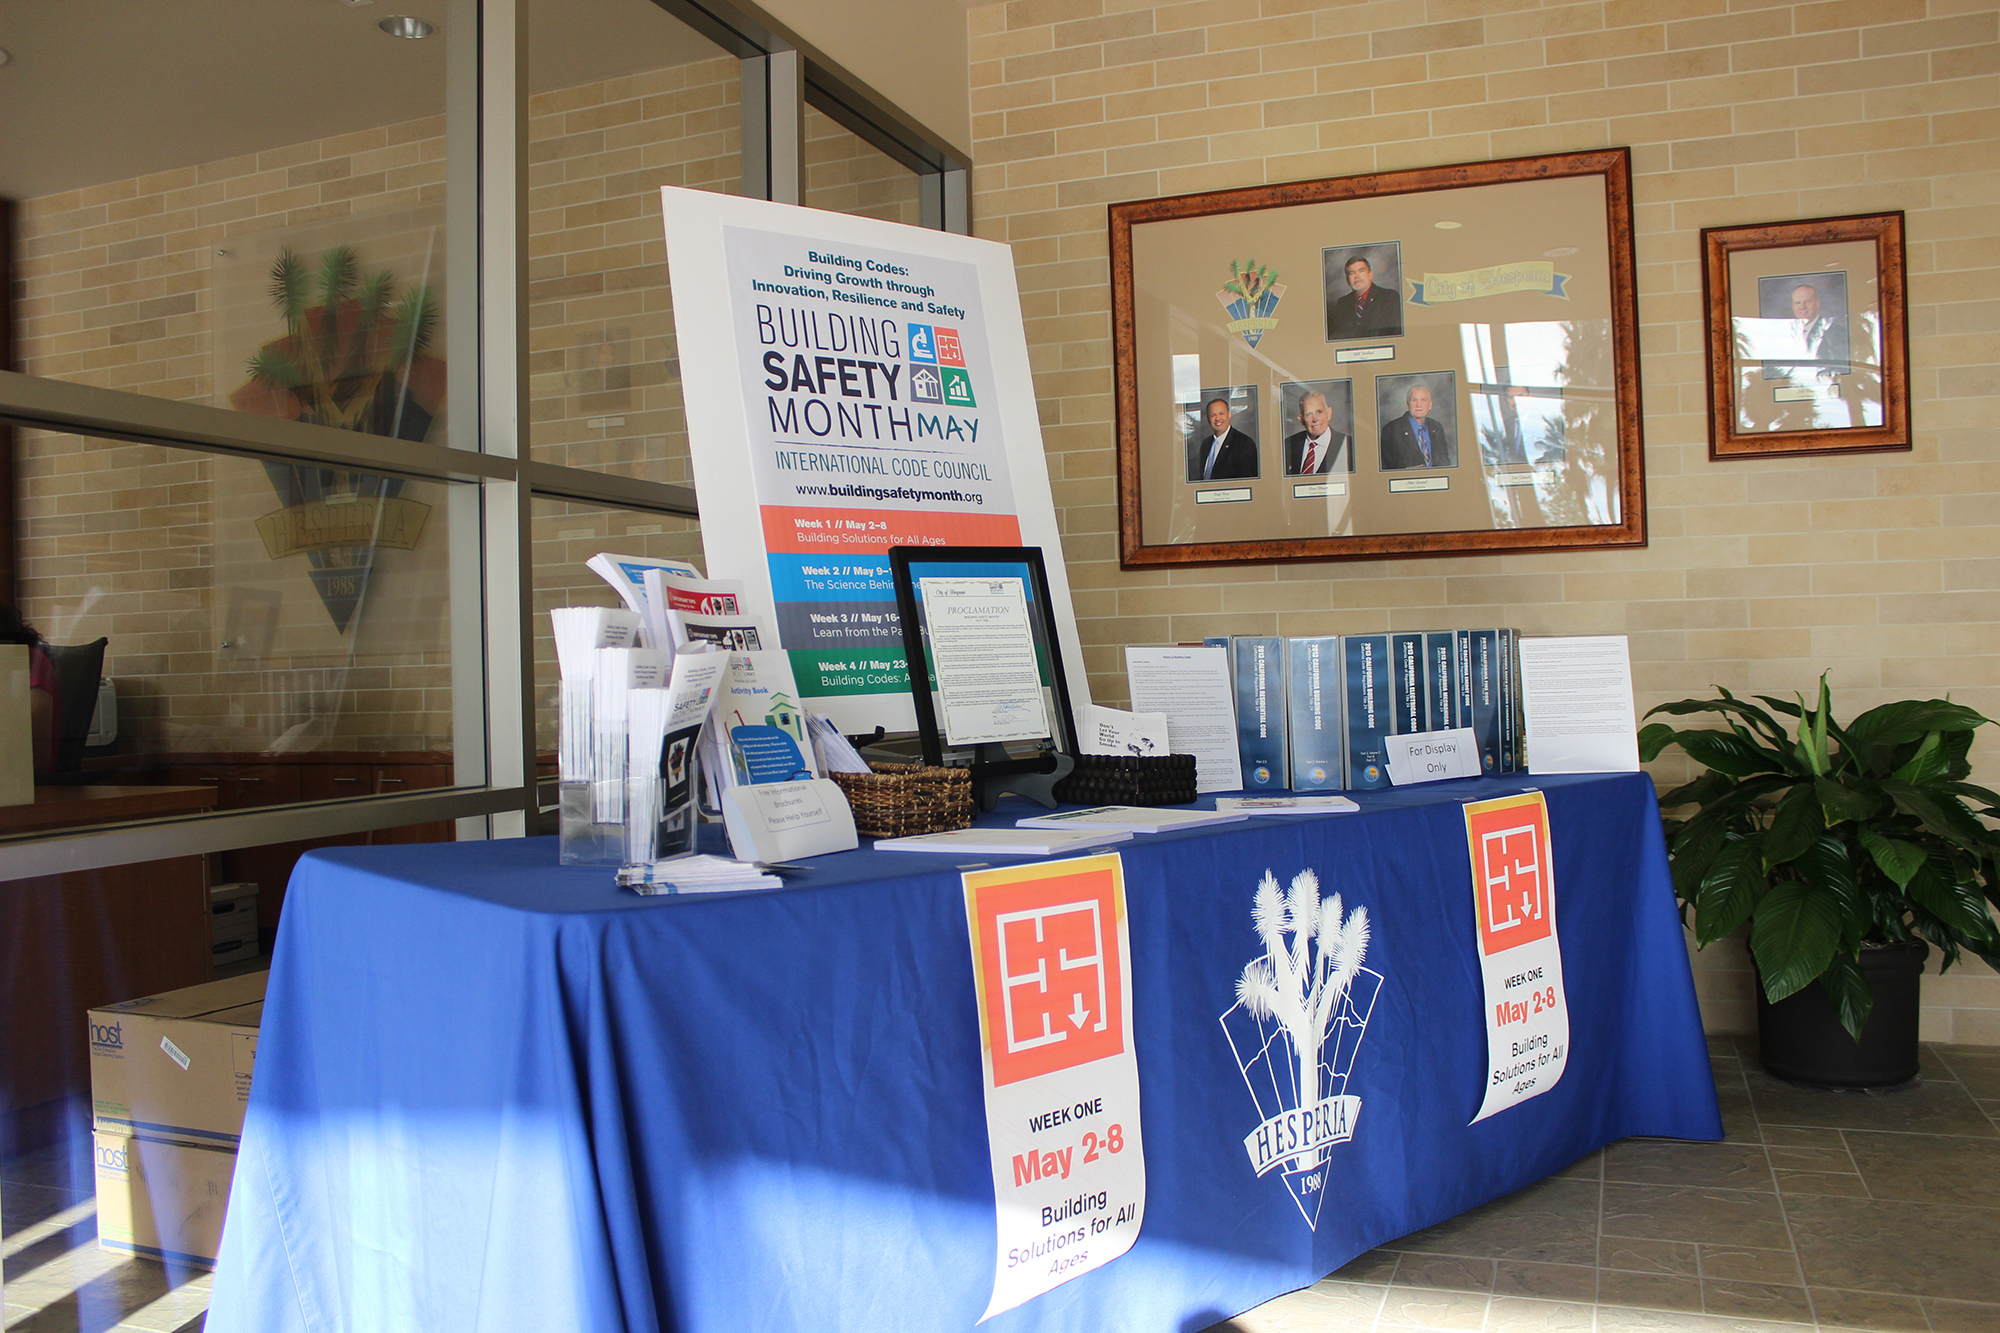 Hesperia Display Building Safety Month